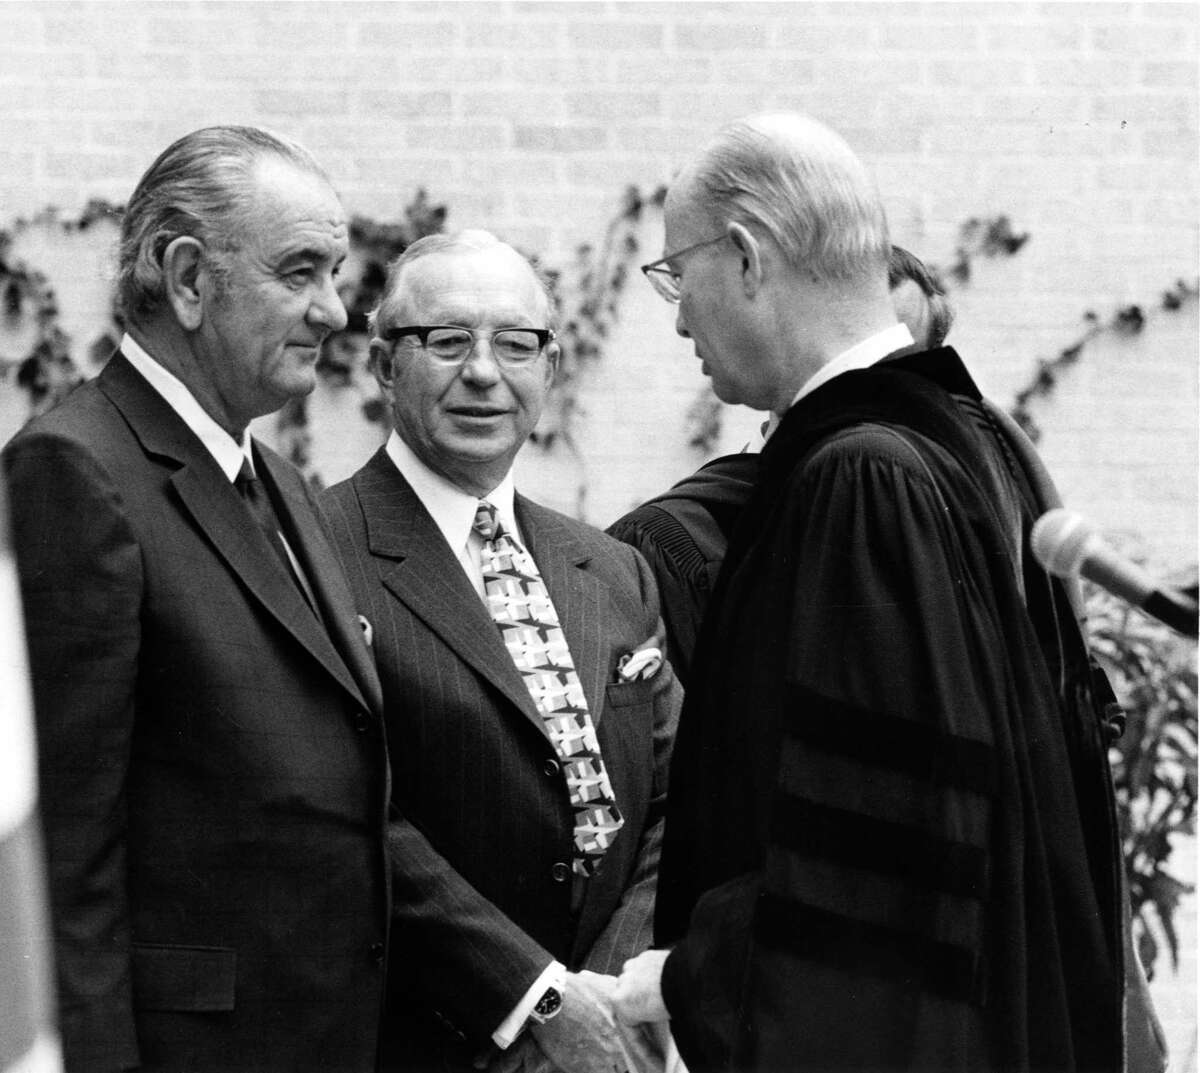 Lyndon Johnson, left, with Perry Bass, center, and J.M. Moudy, right attend an event at Texas Christian University in Fort Worth, Texas, in April 1971. (Photo Courtsey University of Texas Archives Special Collections/Fort Worth Star-Telegram/KRT)